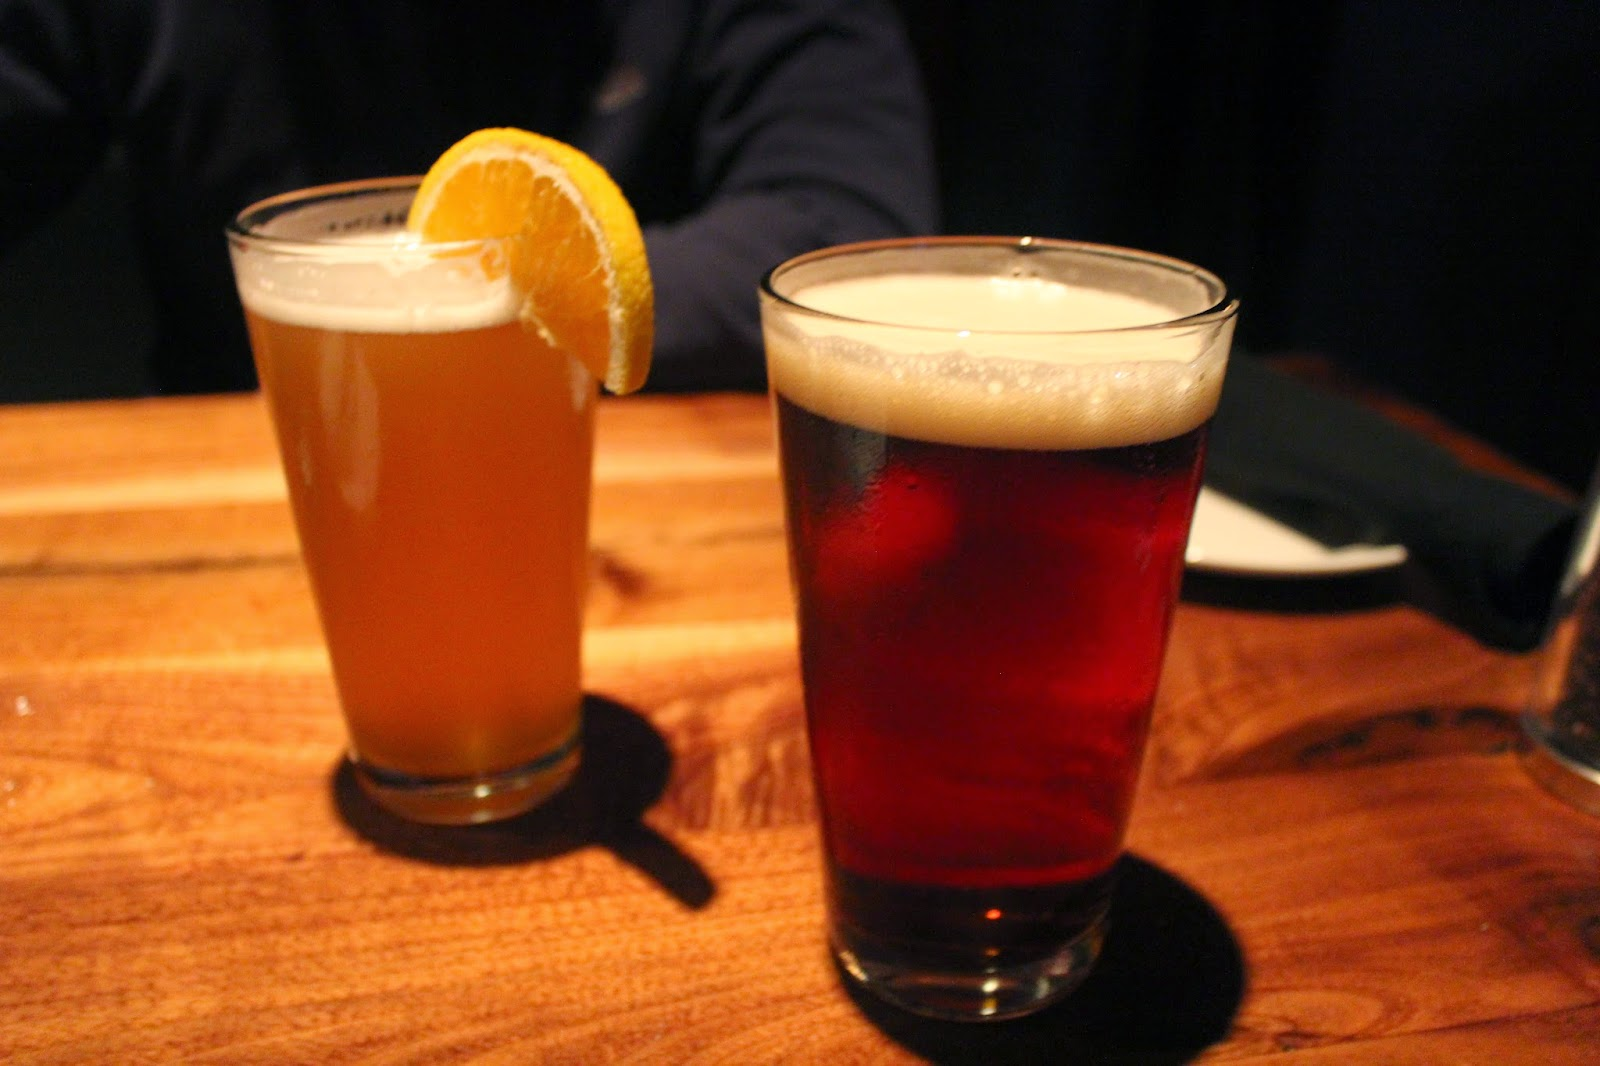 UFO White and Sam Adams OctoberFest at Del Frisco's Grille